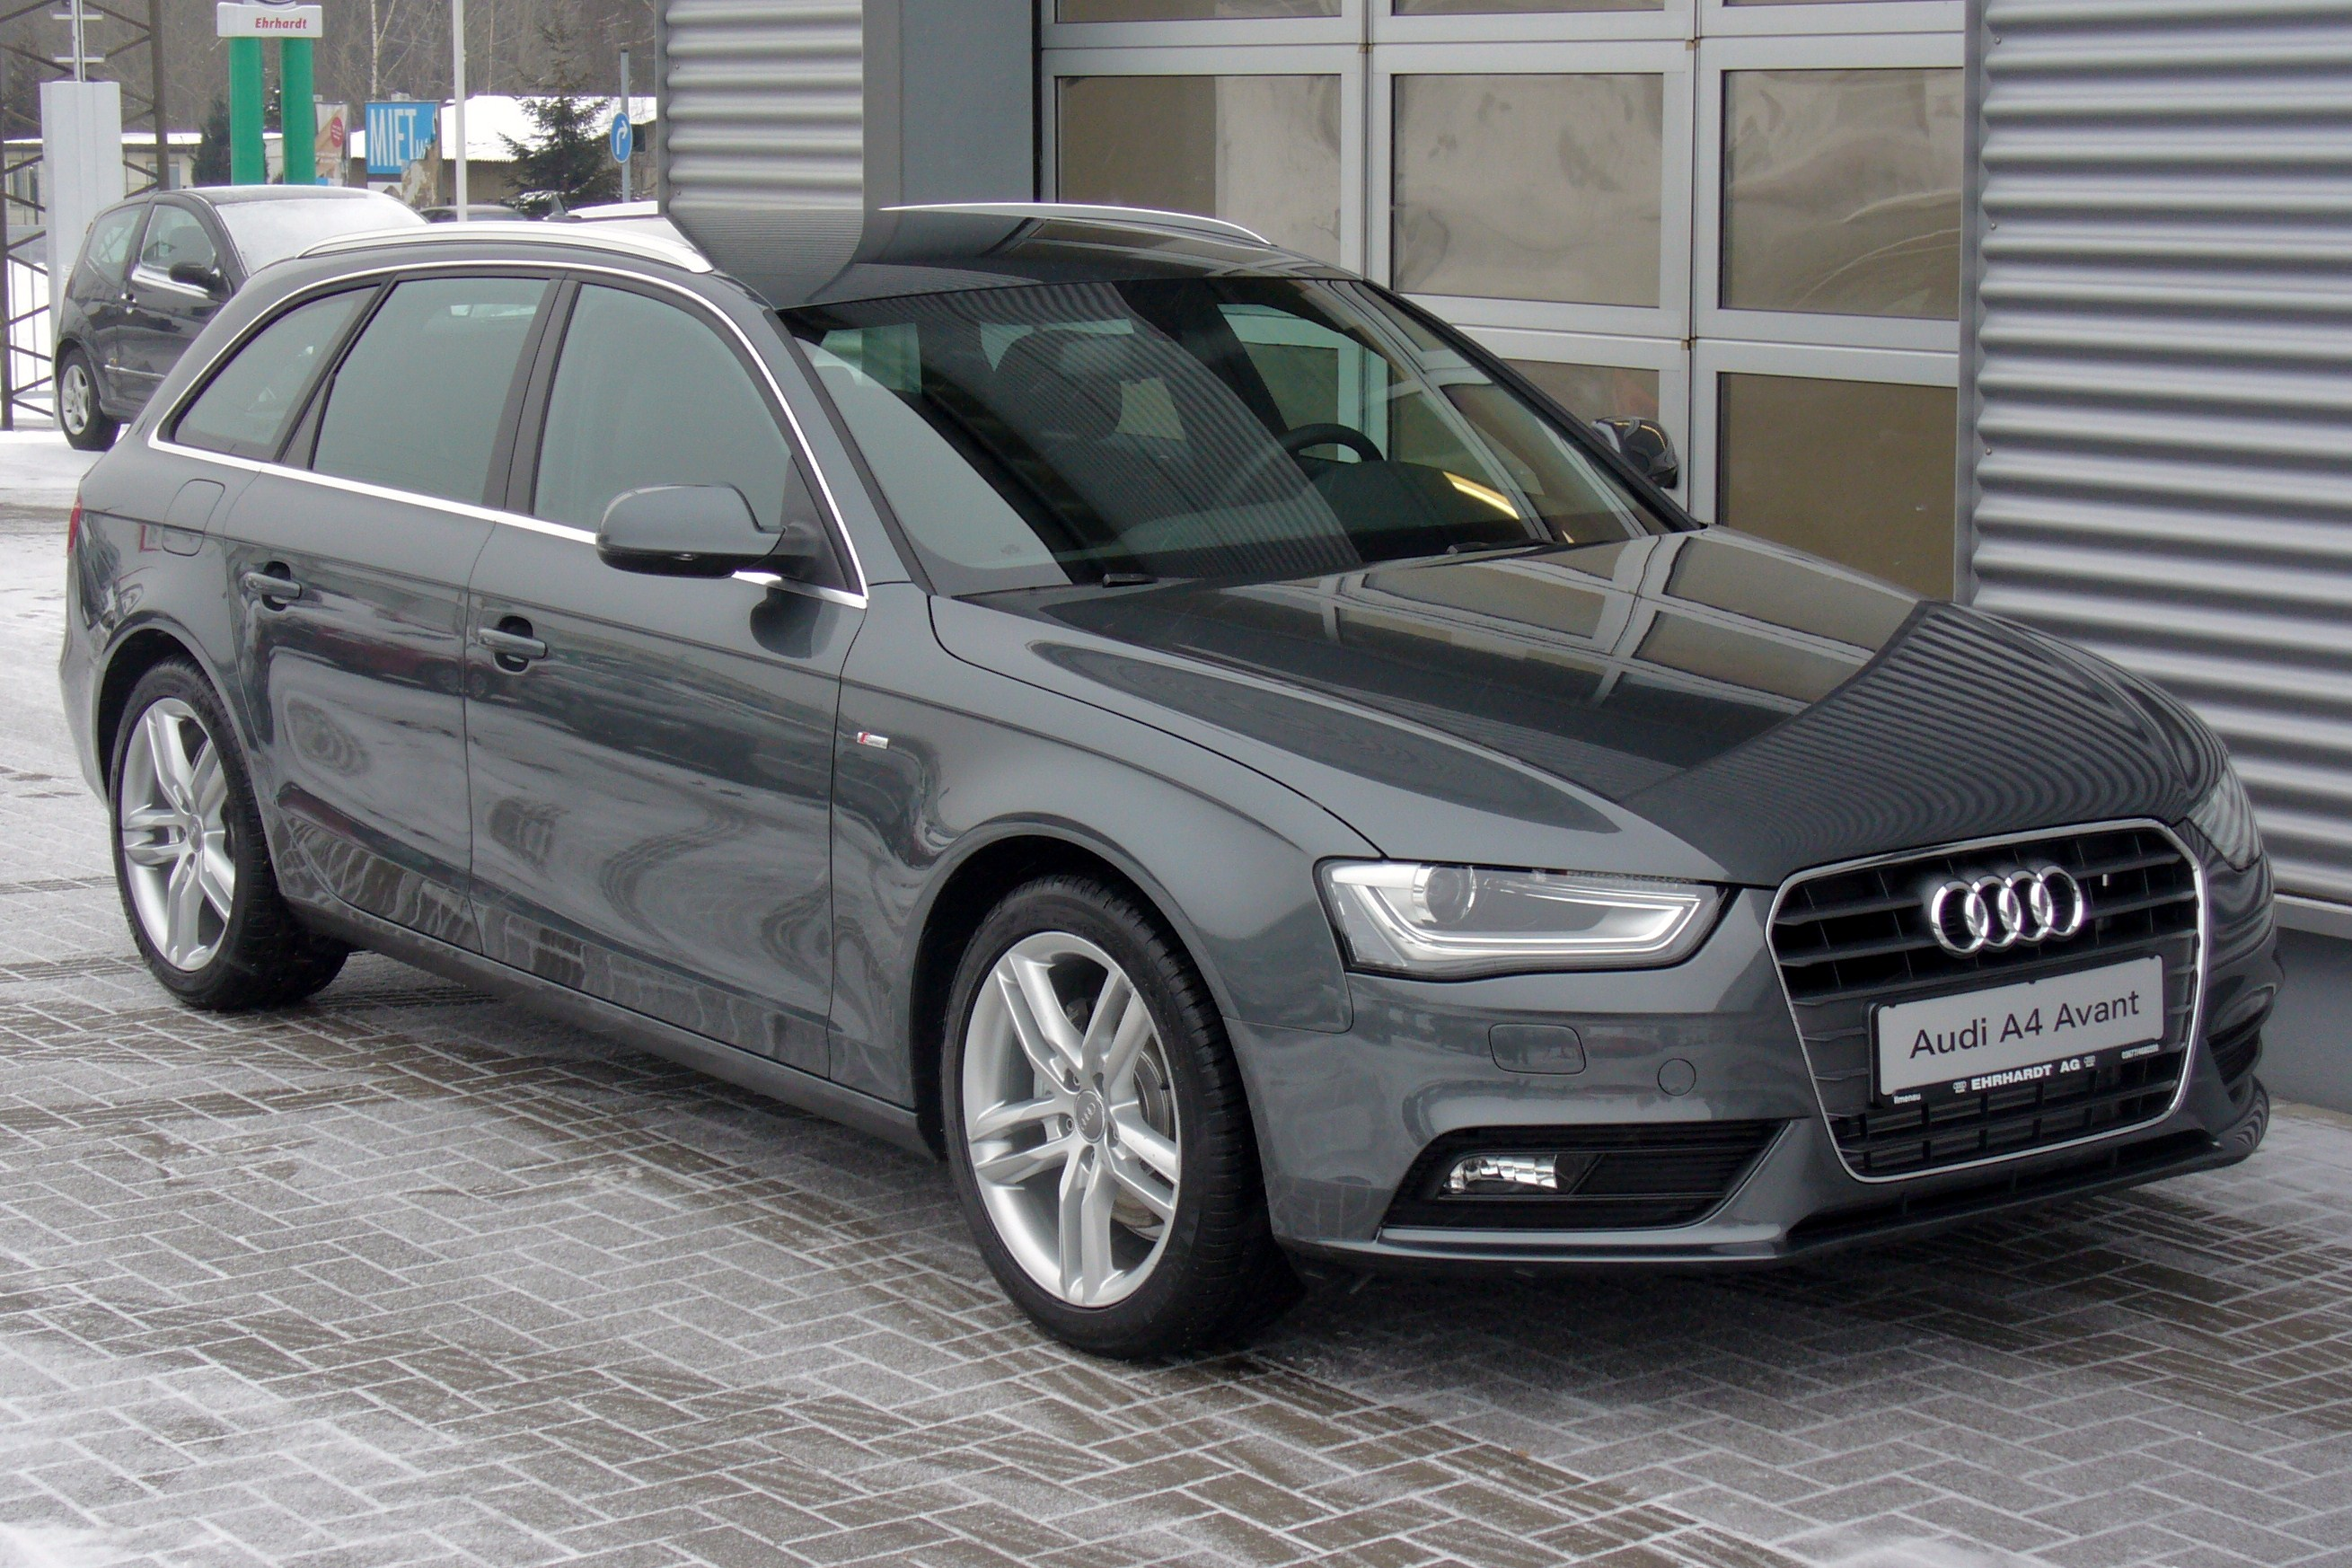 file audi a4 b8 facelift avant ambition s line 2 0 tdi. Black Bedroom Furniture Sets. Home Design Ideas